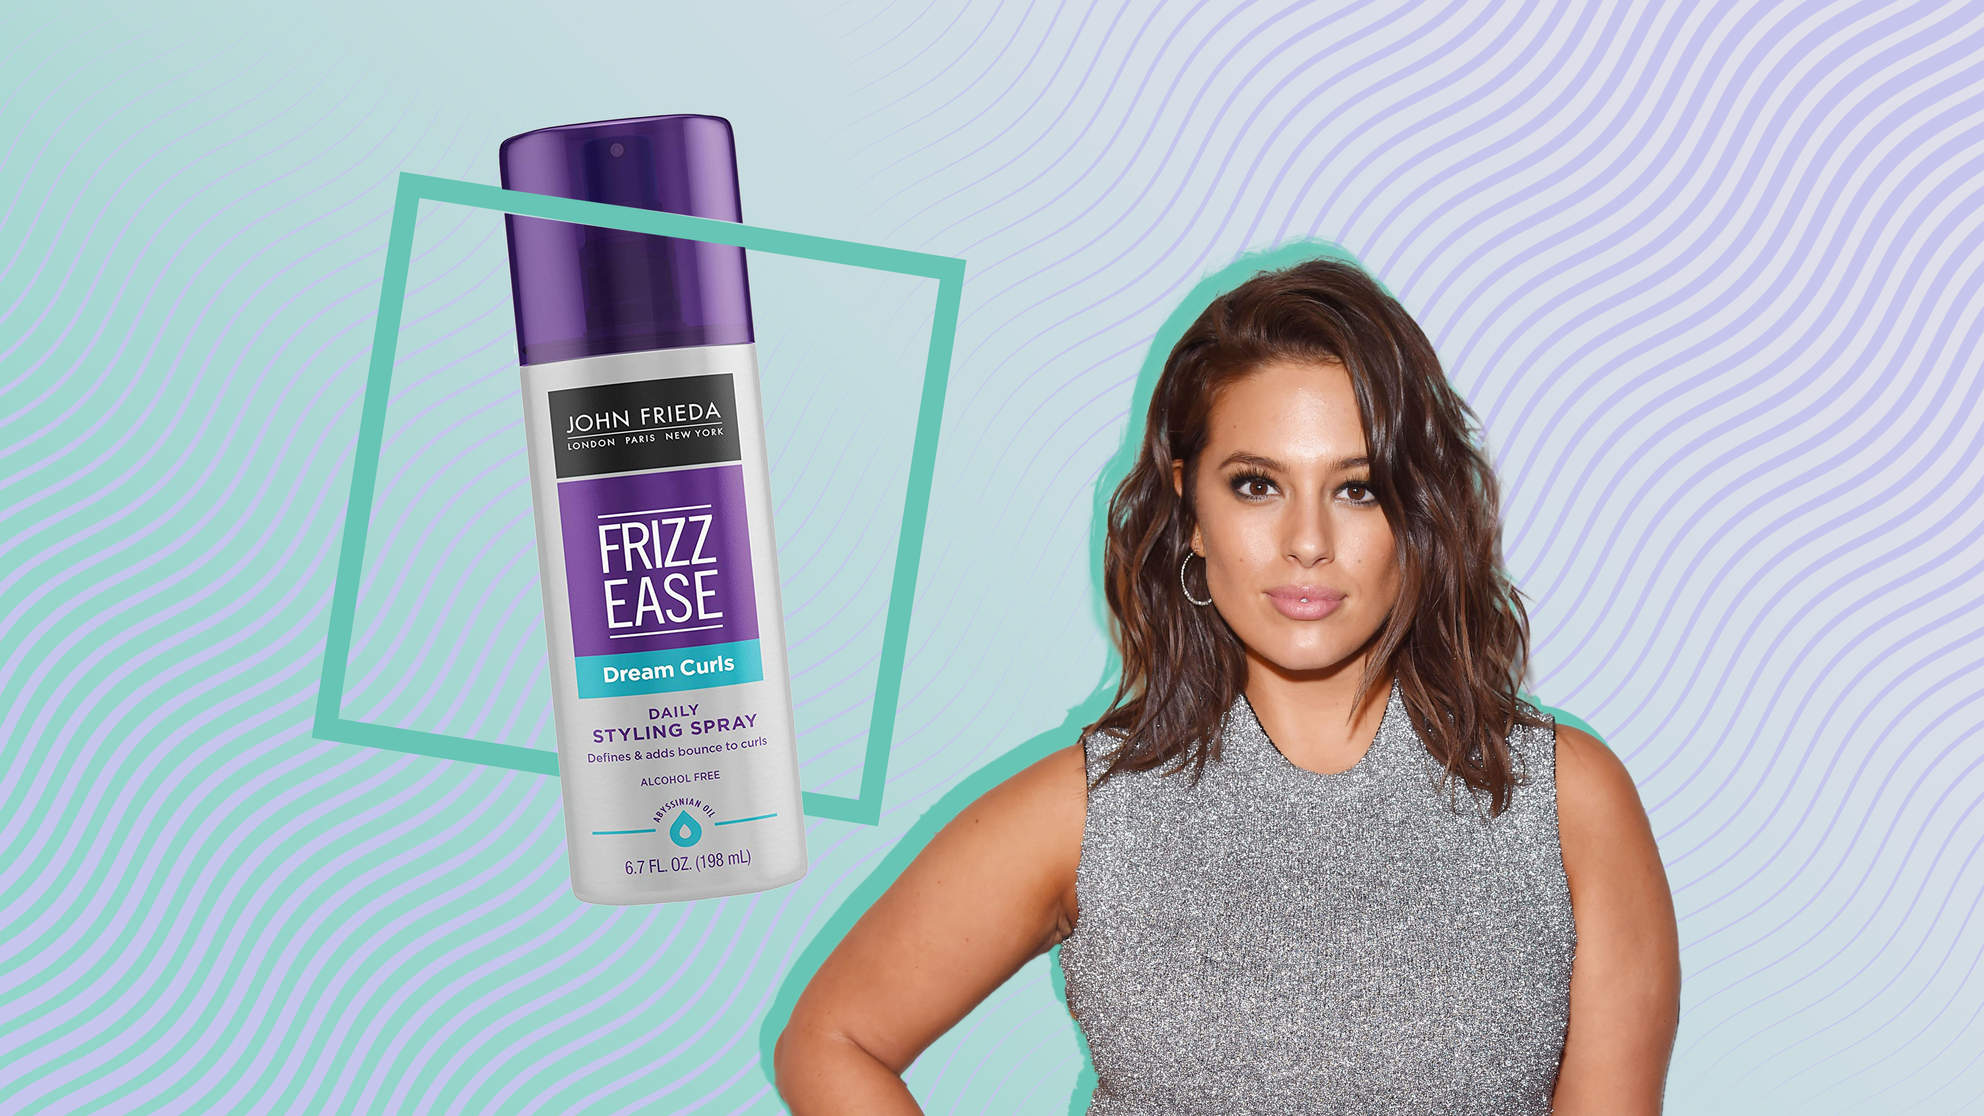 This $7 Hair Styling Spray Has Been Ashley Graham's Go-To Since Middle School